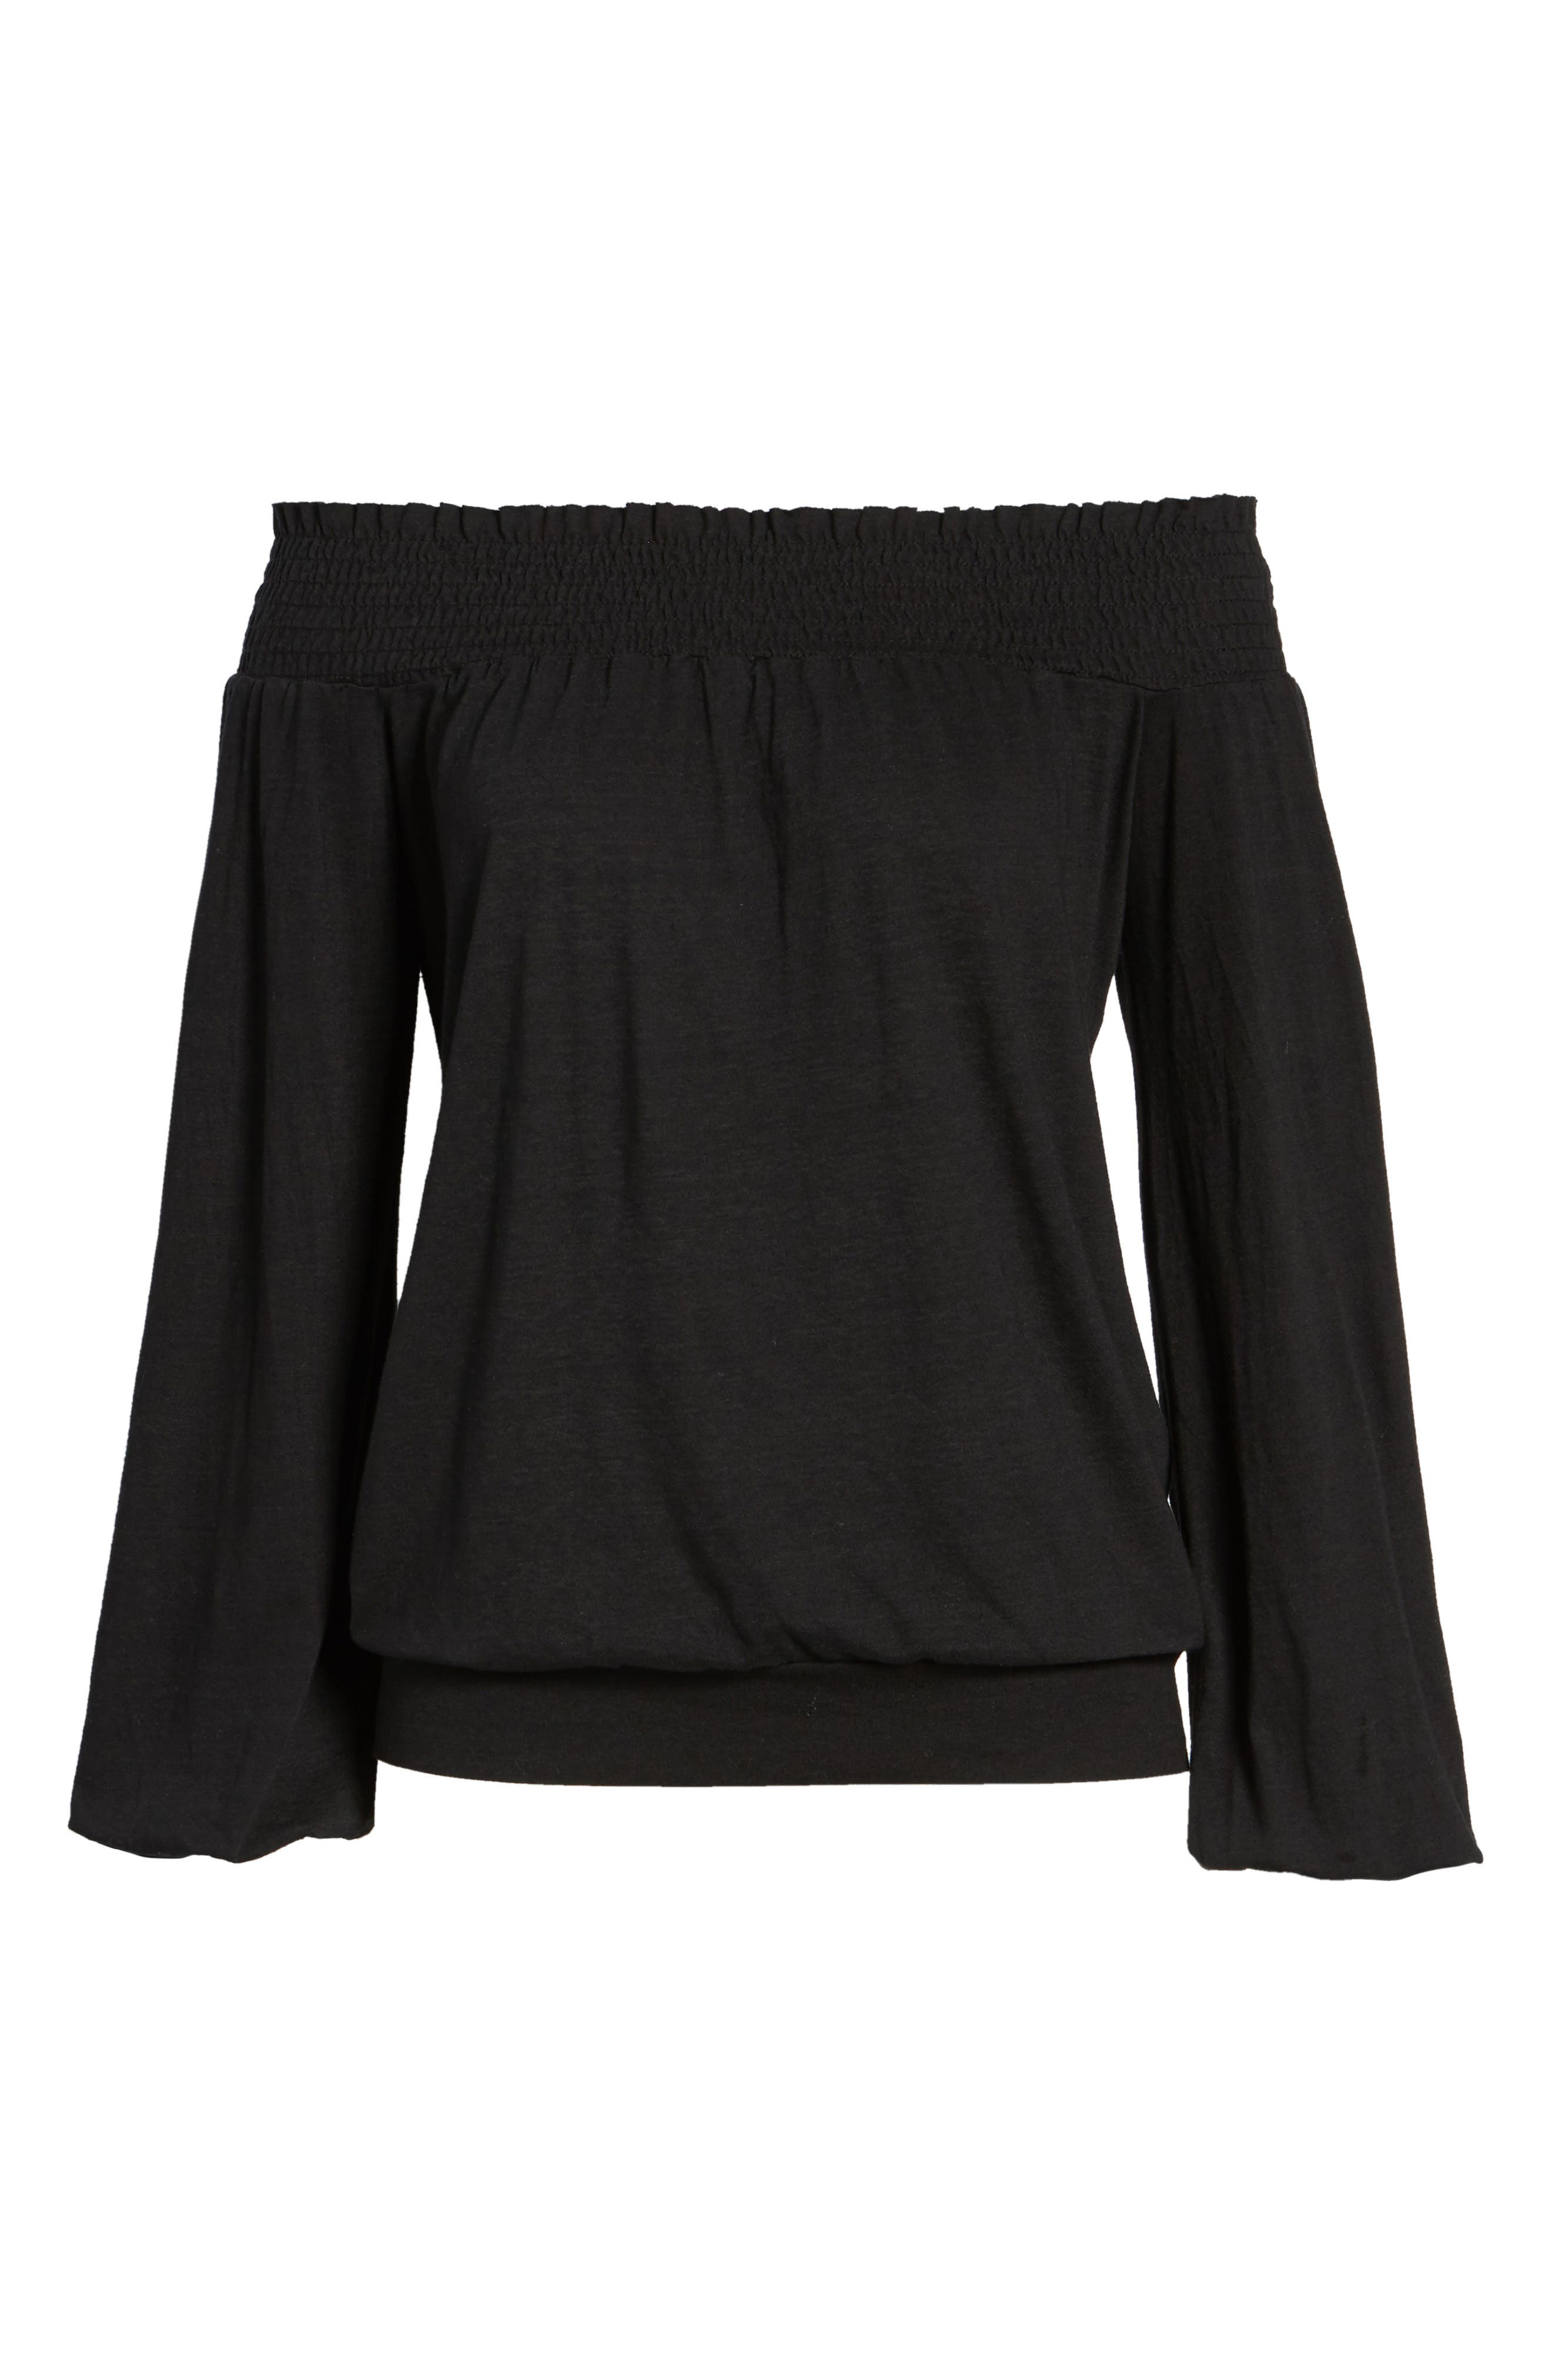 Off the Shoulder Tee,                             Alternate thumbnail 6, color,                             001